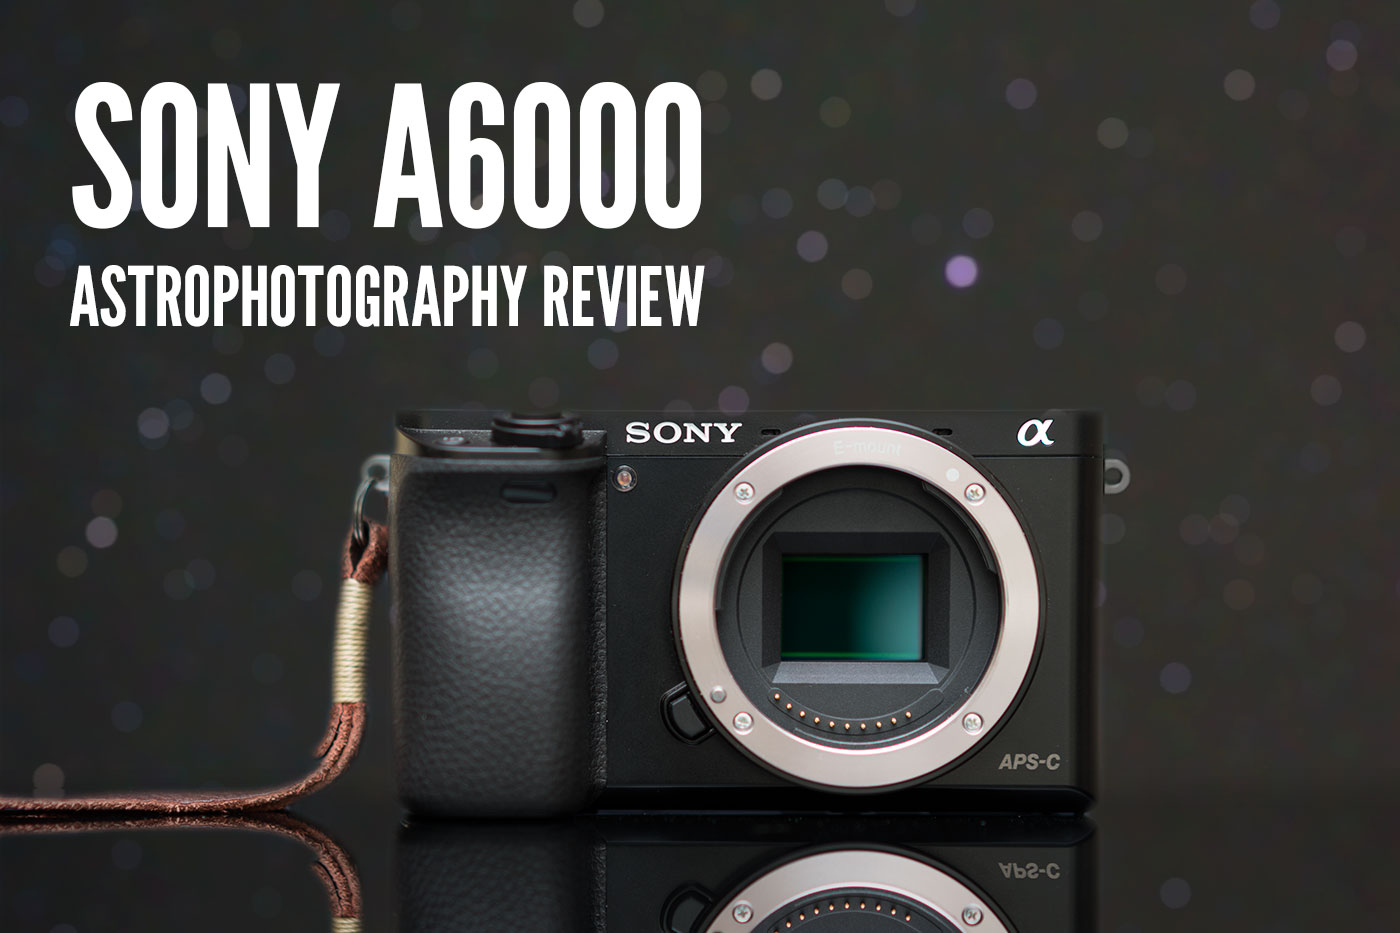 Sony a6000 Astrophotography Review